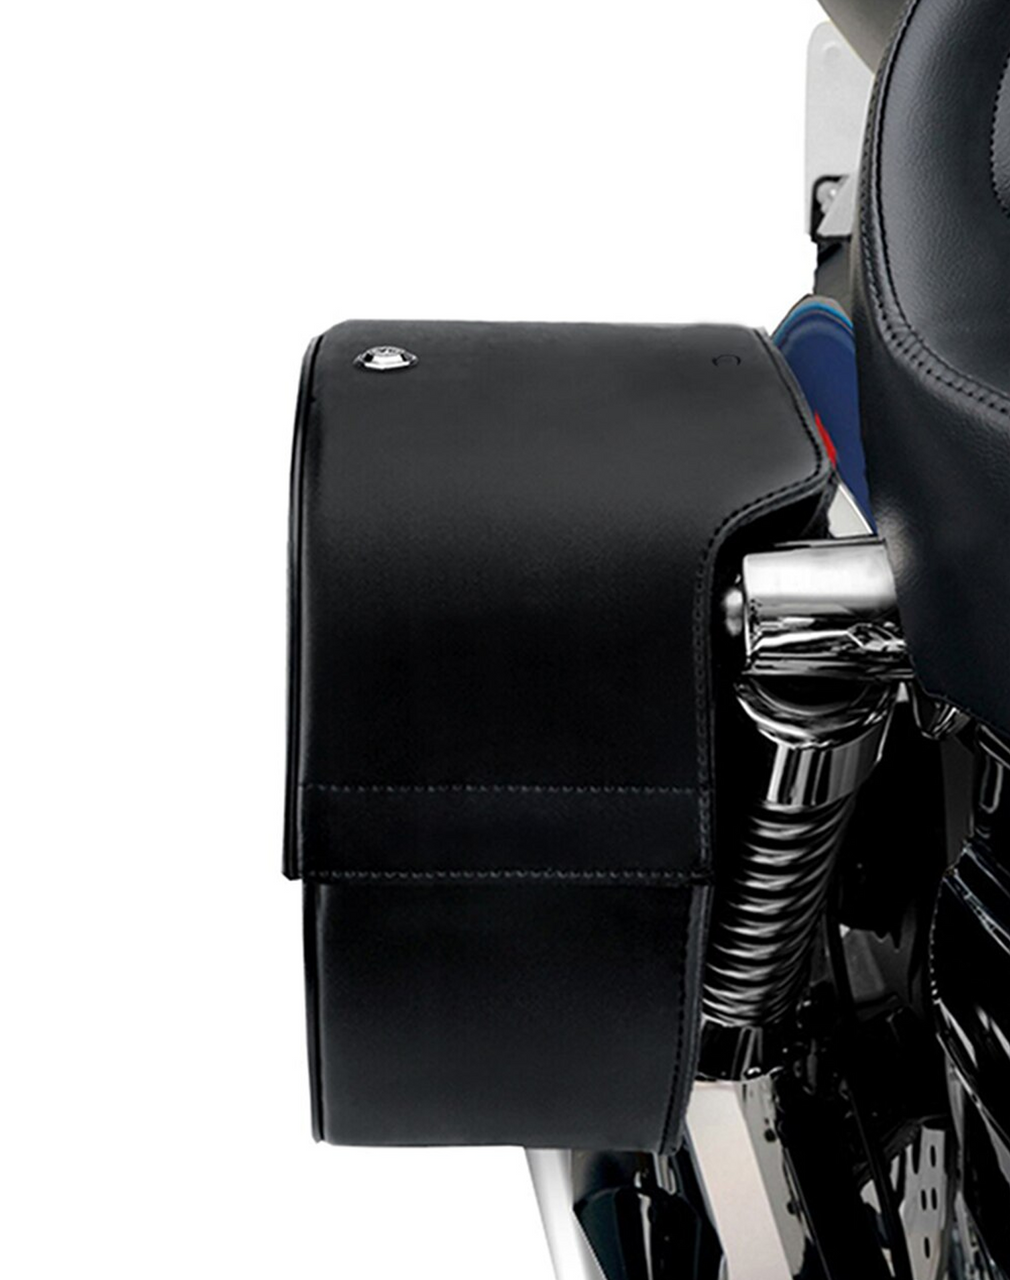 Viking SS Large Shock Cutout Slanted Studded Motorcycle Saddlebags For Harley Sportster Iron 1200 Shock cutout view